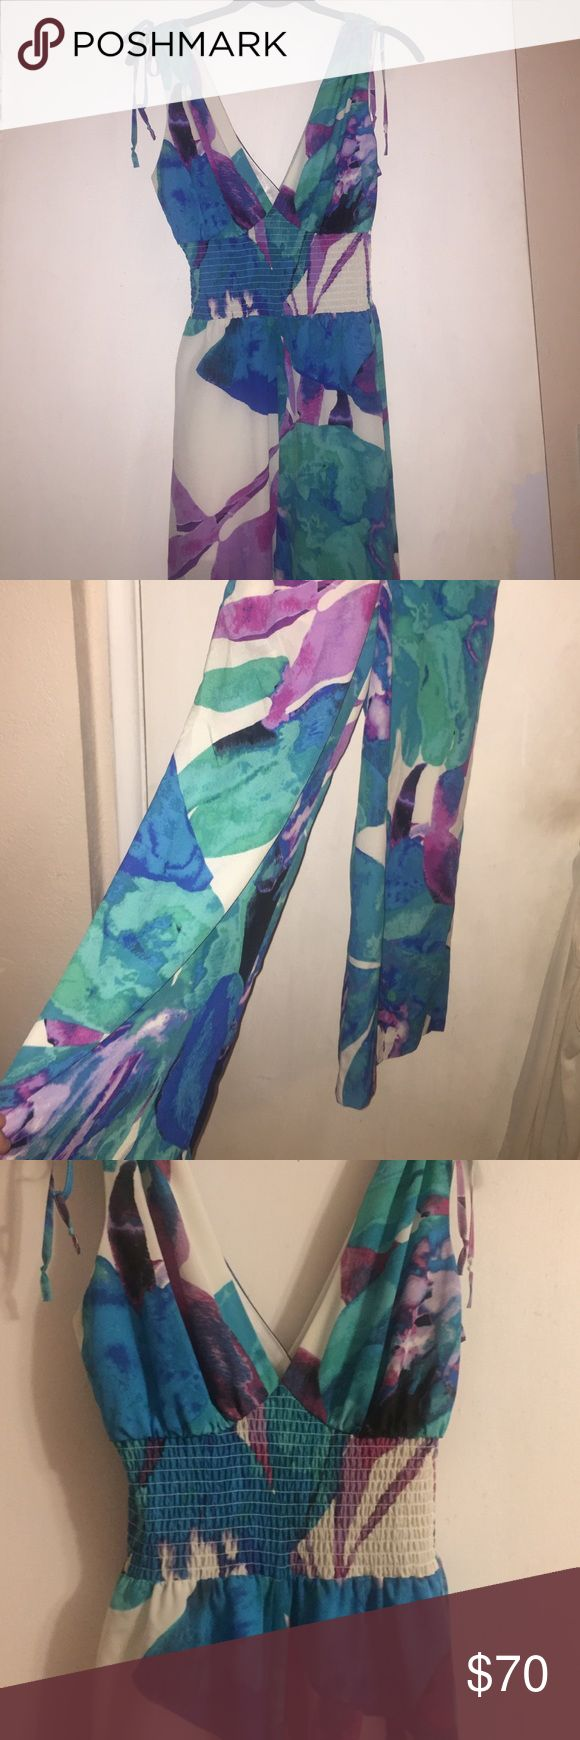 Bebe jumpsuit Bebe colorful vneck jumpsuit with stretchy band and flowy pants. Only worn once, looks brand new, and is in great condition bebe Other